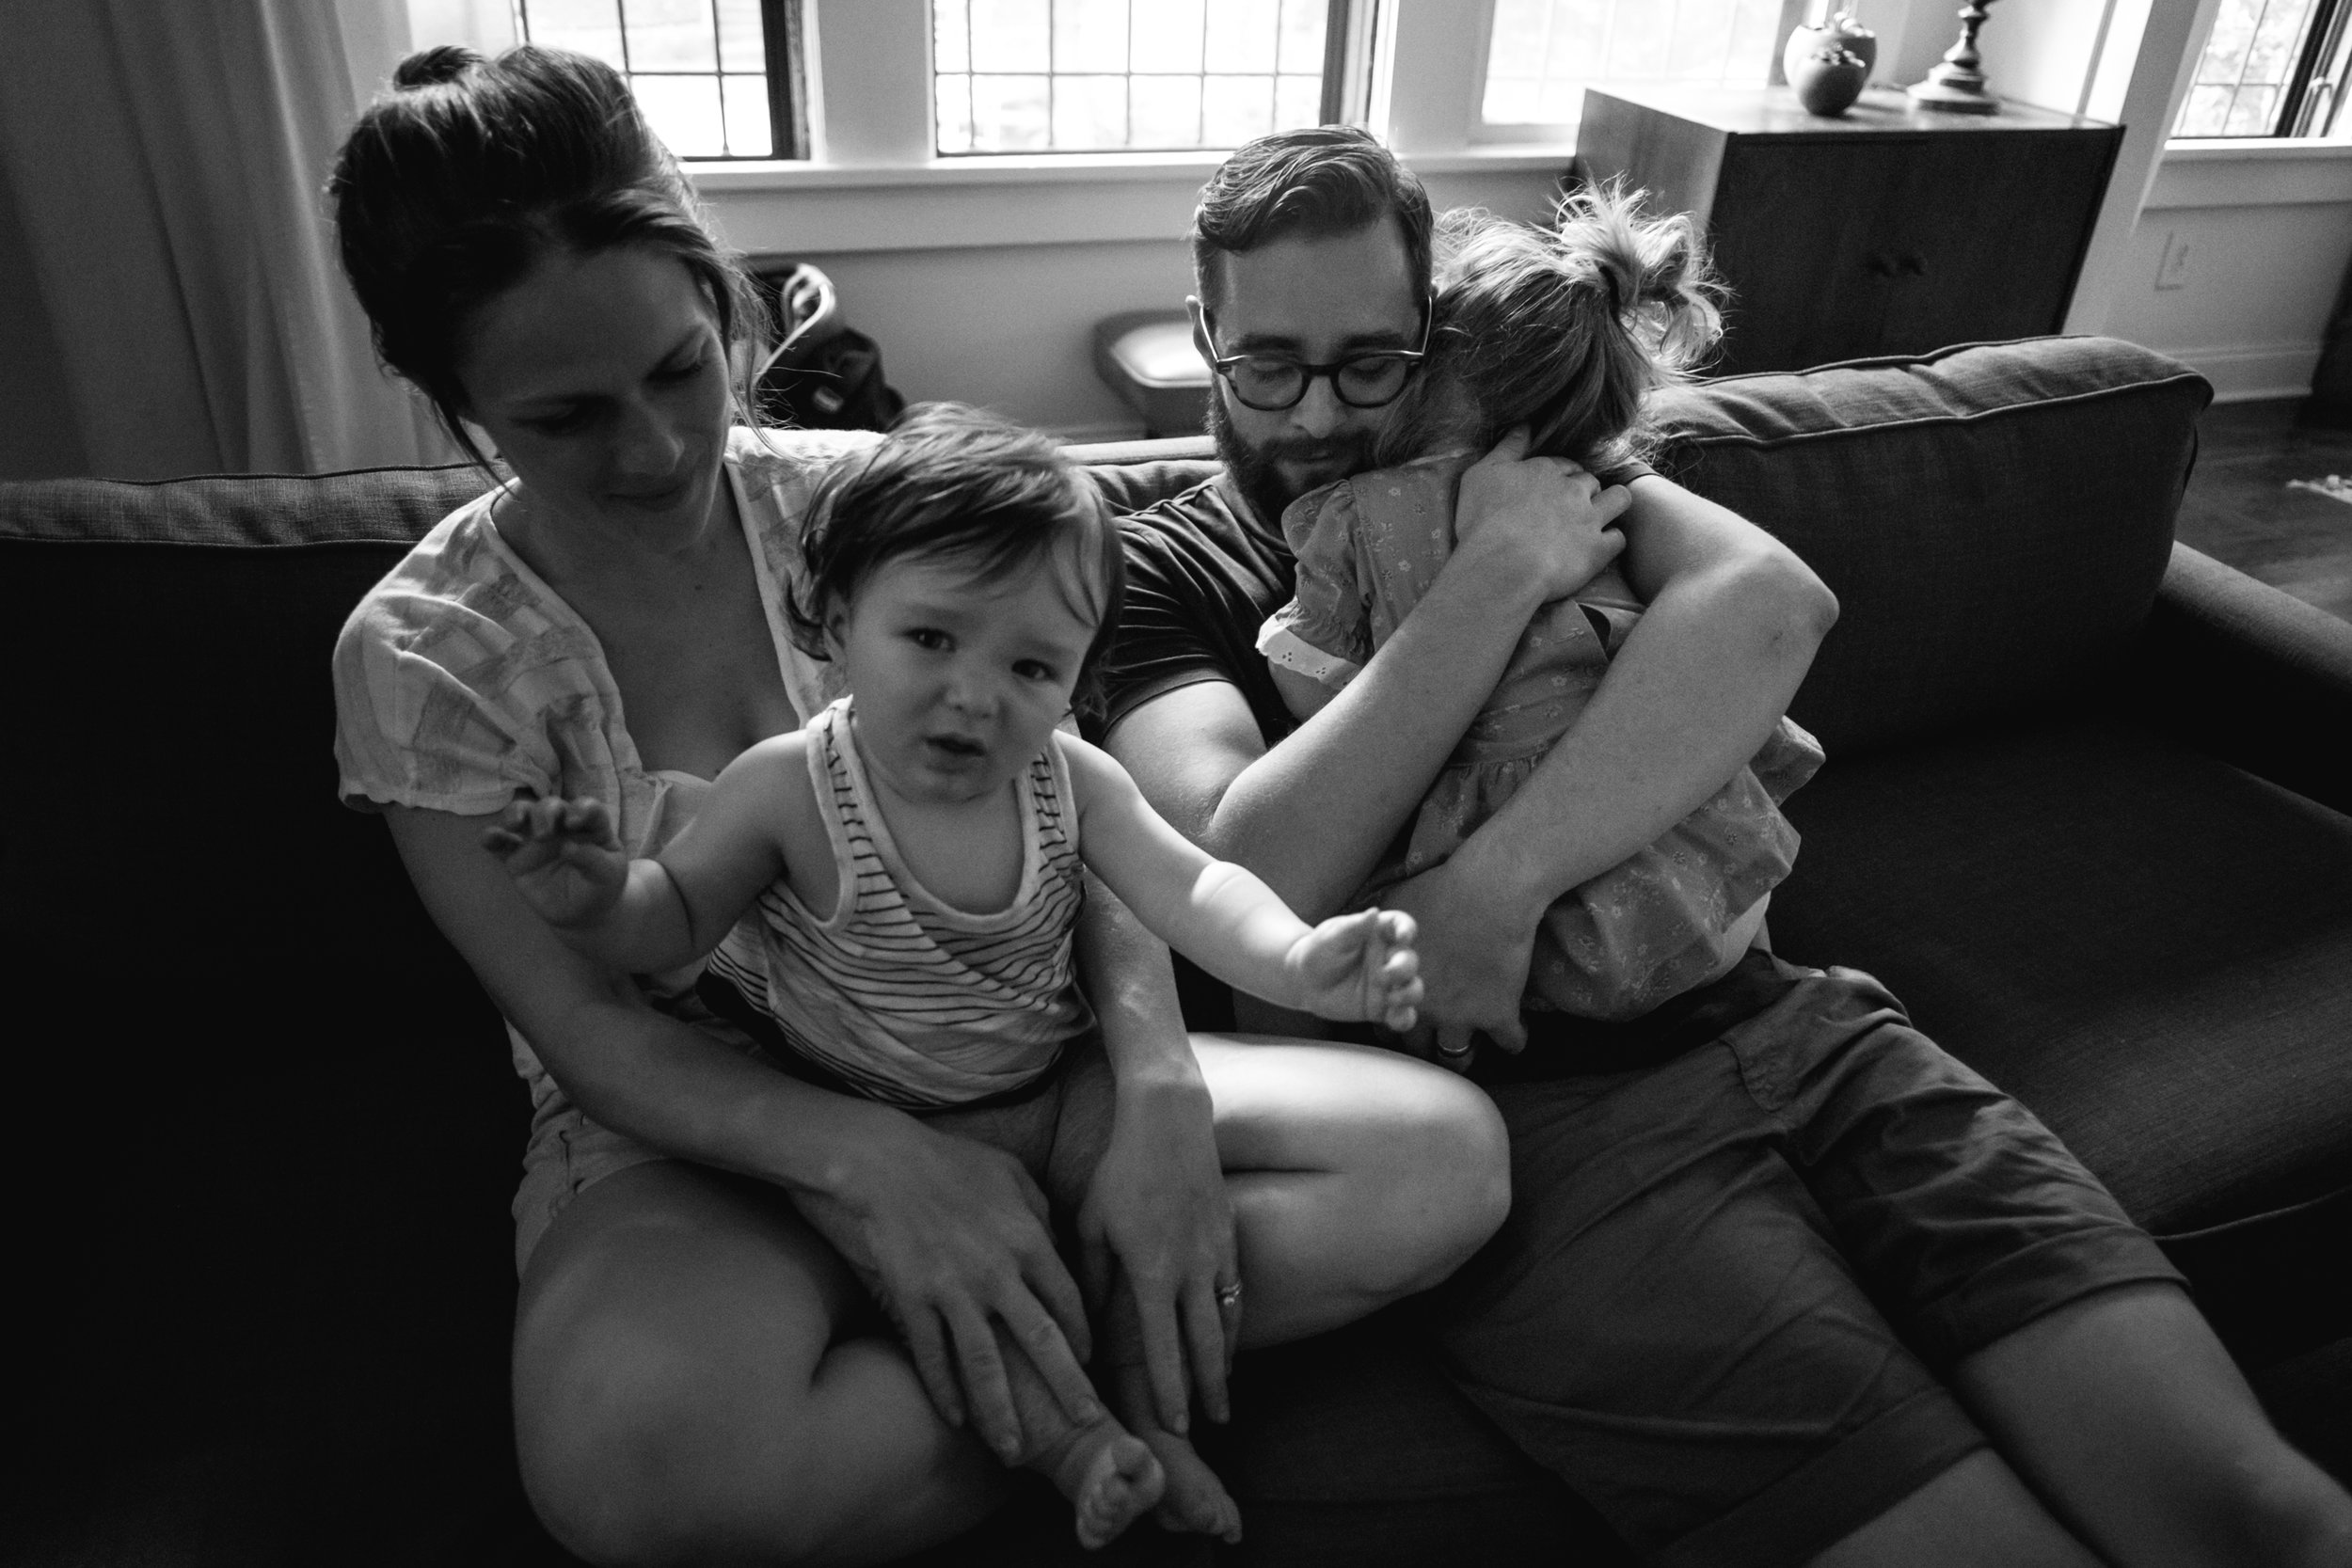 a man embraces his daughter on the couch next to his wife and daughter